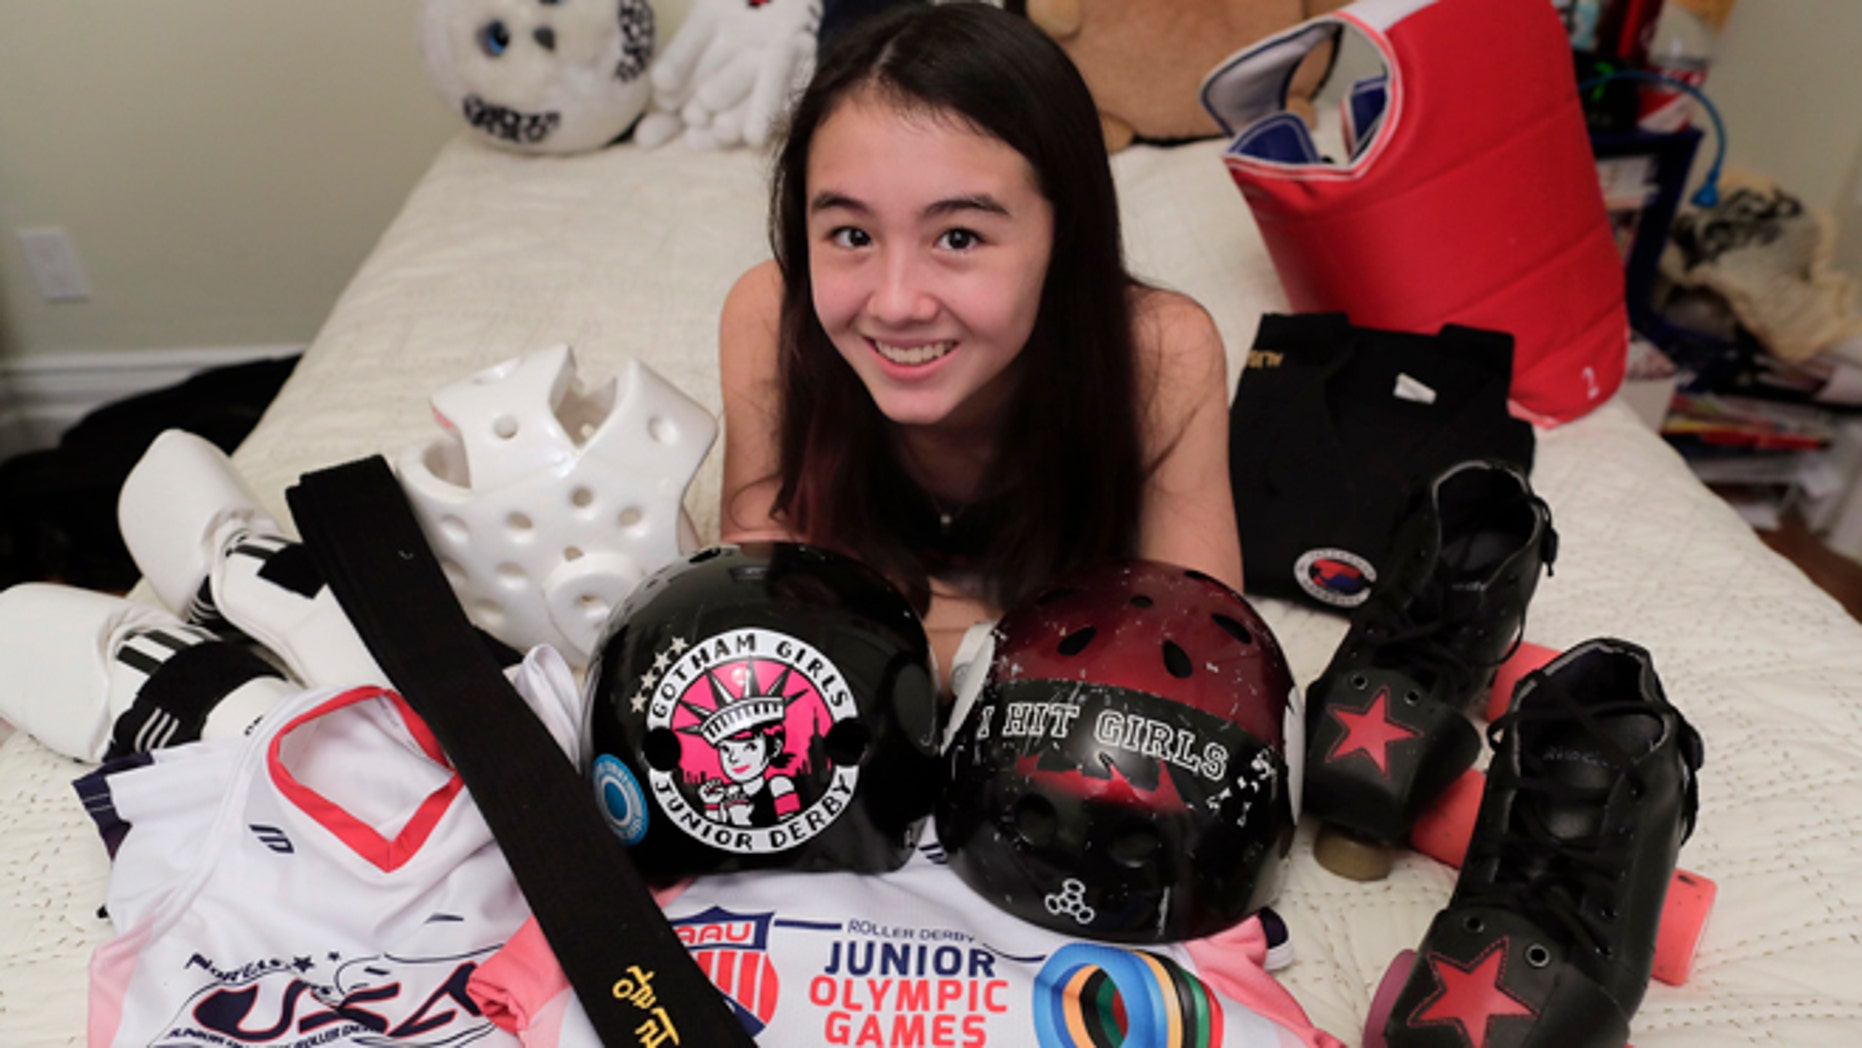 Alison Rogers poses for a photo with some of the jerseys and equipment she uses for the various sports she plays, including Tae Kwon Do and roller derby, at her home.